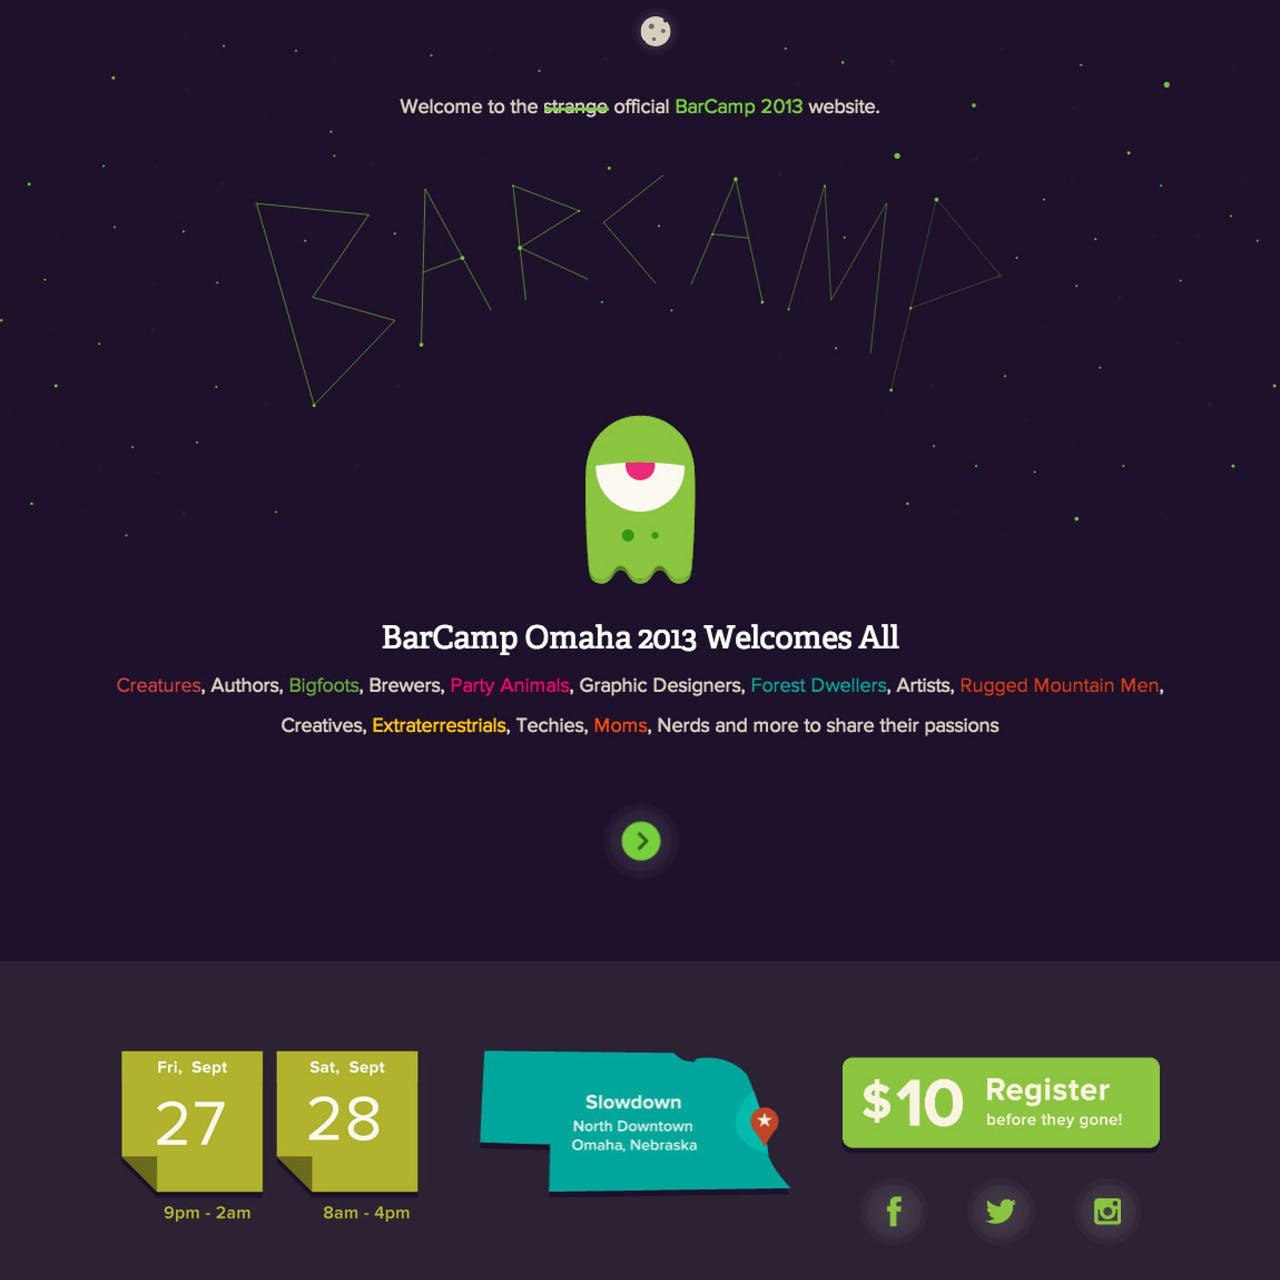 Barcamp Omaha 2013 Website Screenshot